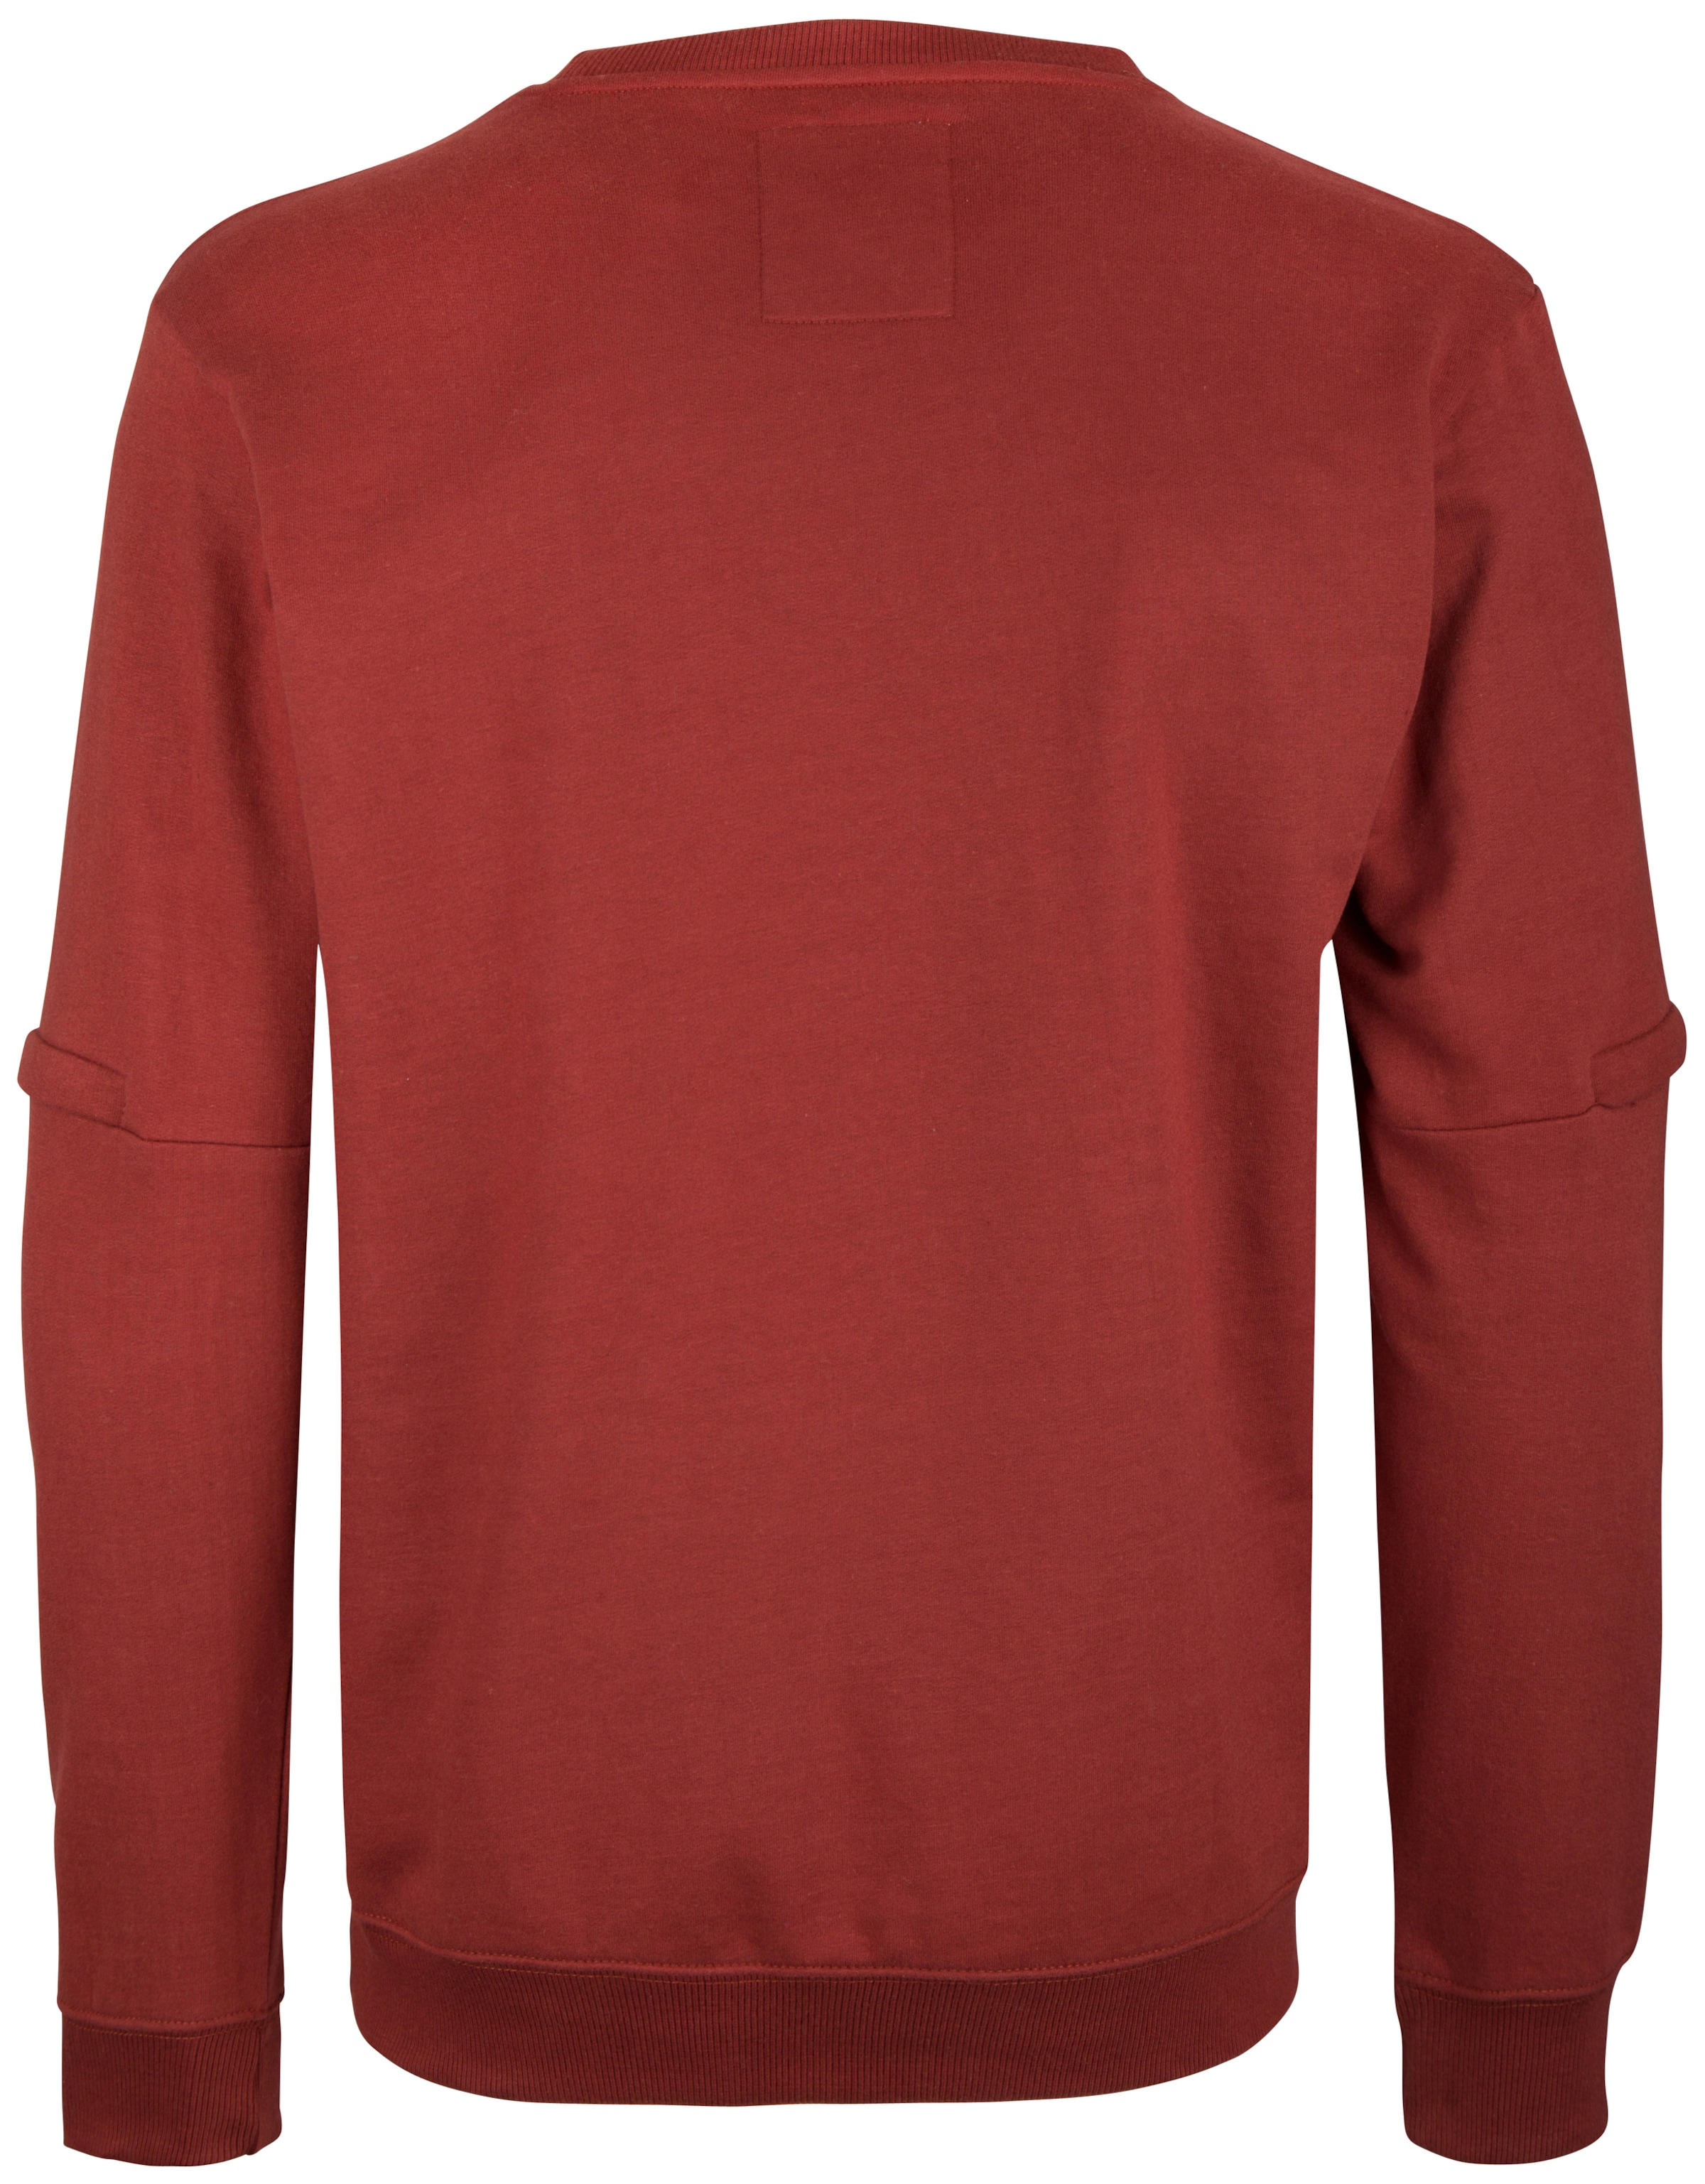 Rot Pullover Soulstar In Soulstar In Soulstar Pullover Pullover Rot 4j5q3LcARS